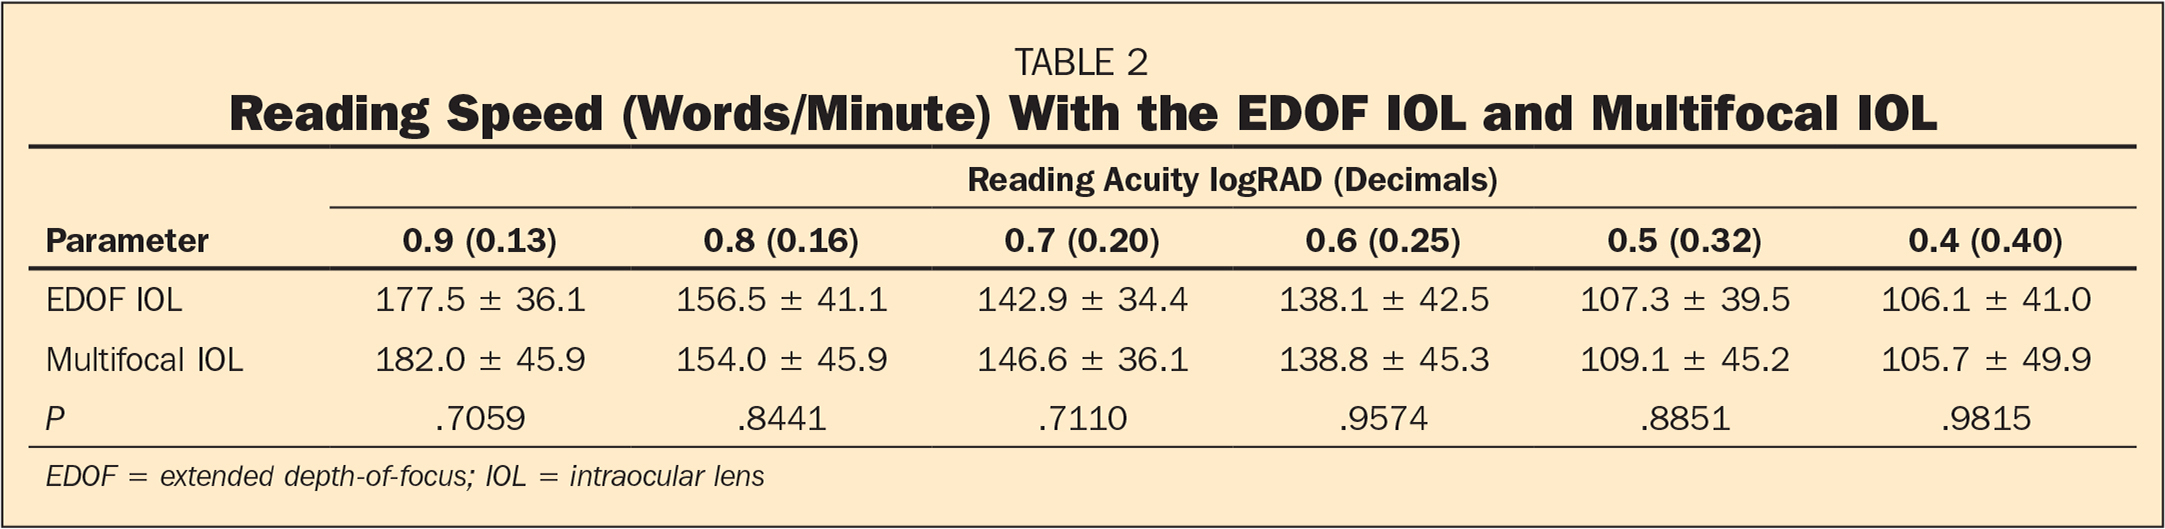 Reading Speed (Words/Minute) With the EDOF IOL and Multifocal IOL